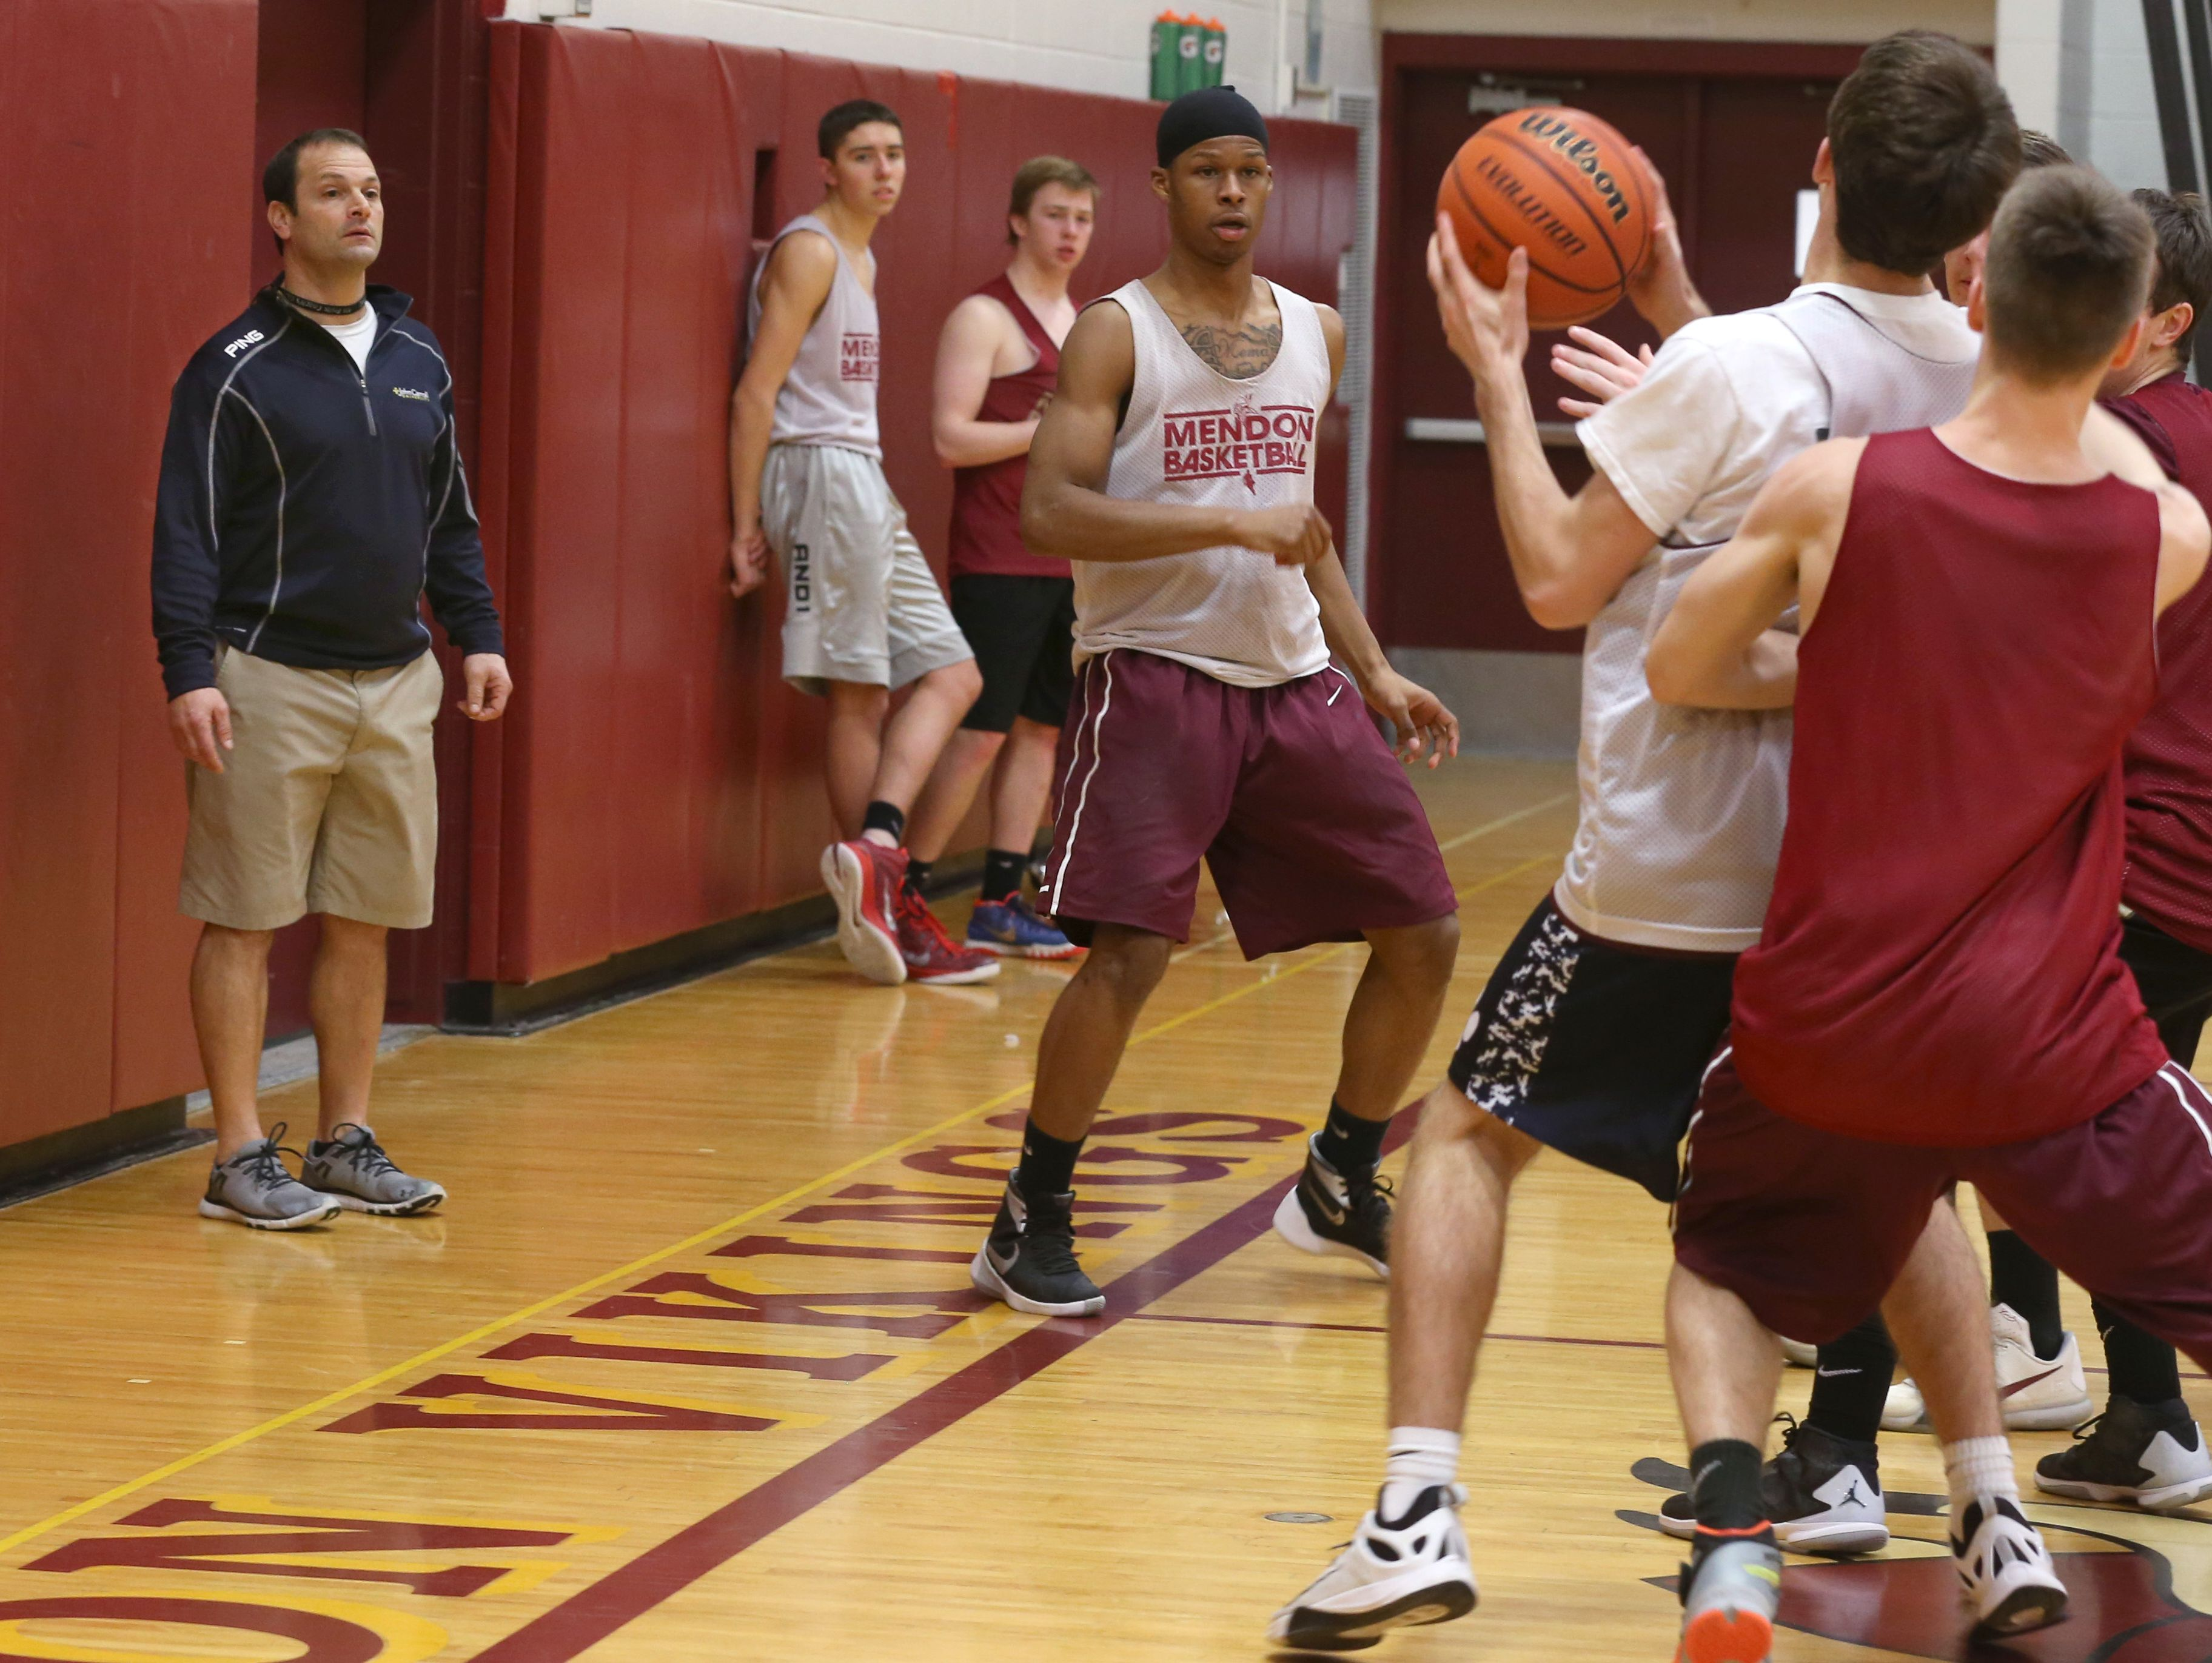 Jeff Amoroso, Pittsford Mendon boys varsity basketball assistant coach, watches from the sideline as his players run in-bounds drills during practice Tuesday at the high school.